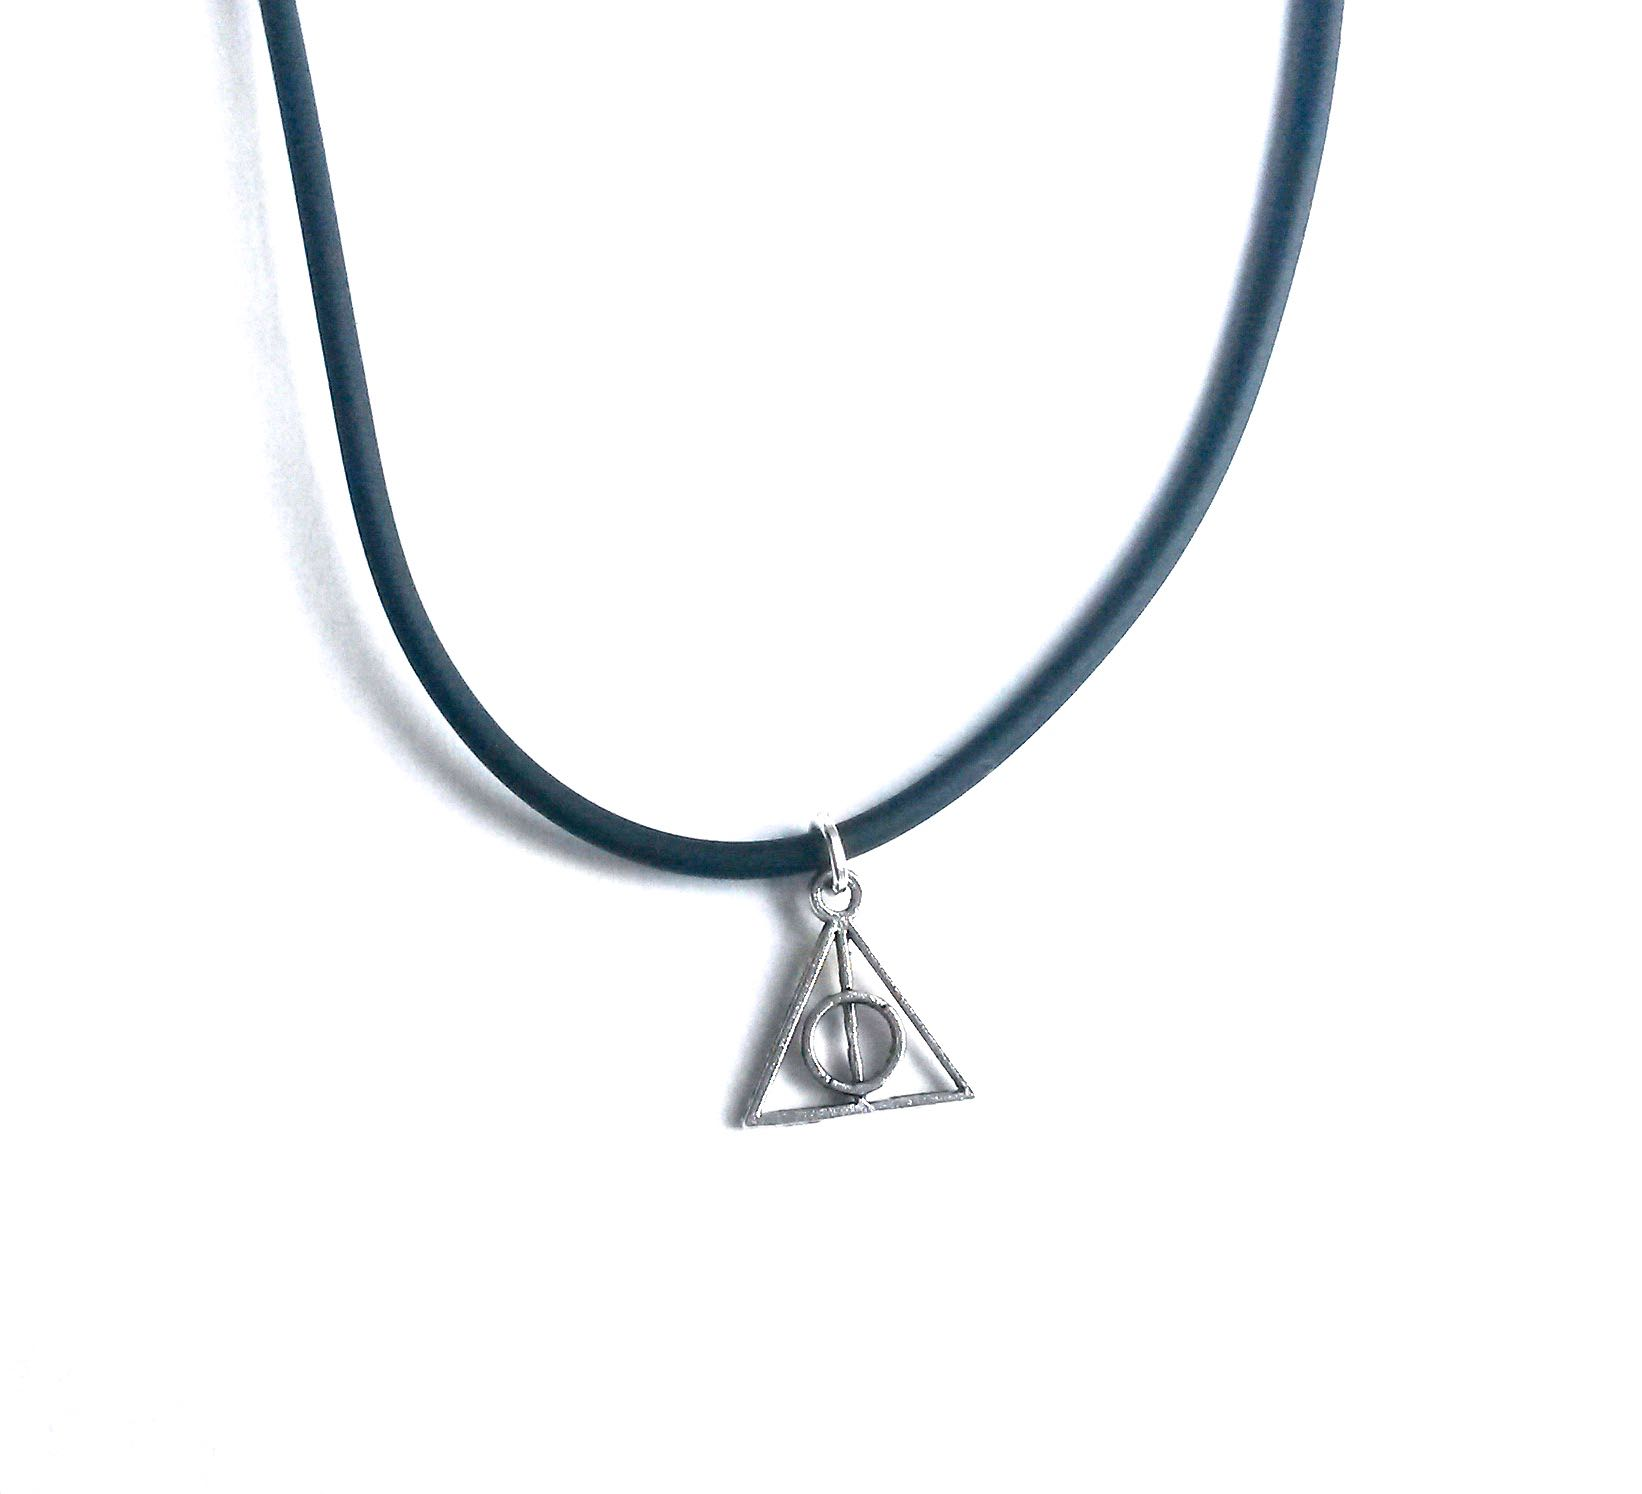 Potter deathly hallows necklace harry potter deathly hallows necklace biocorpaavc